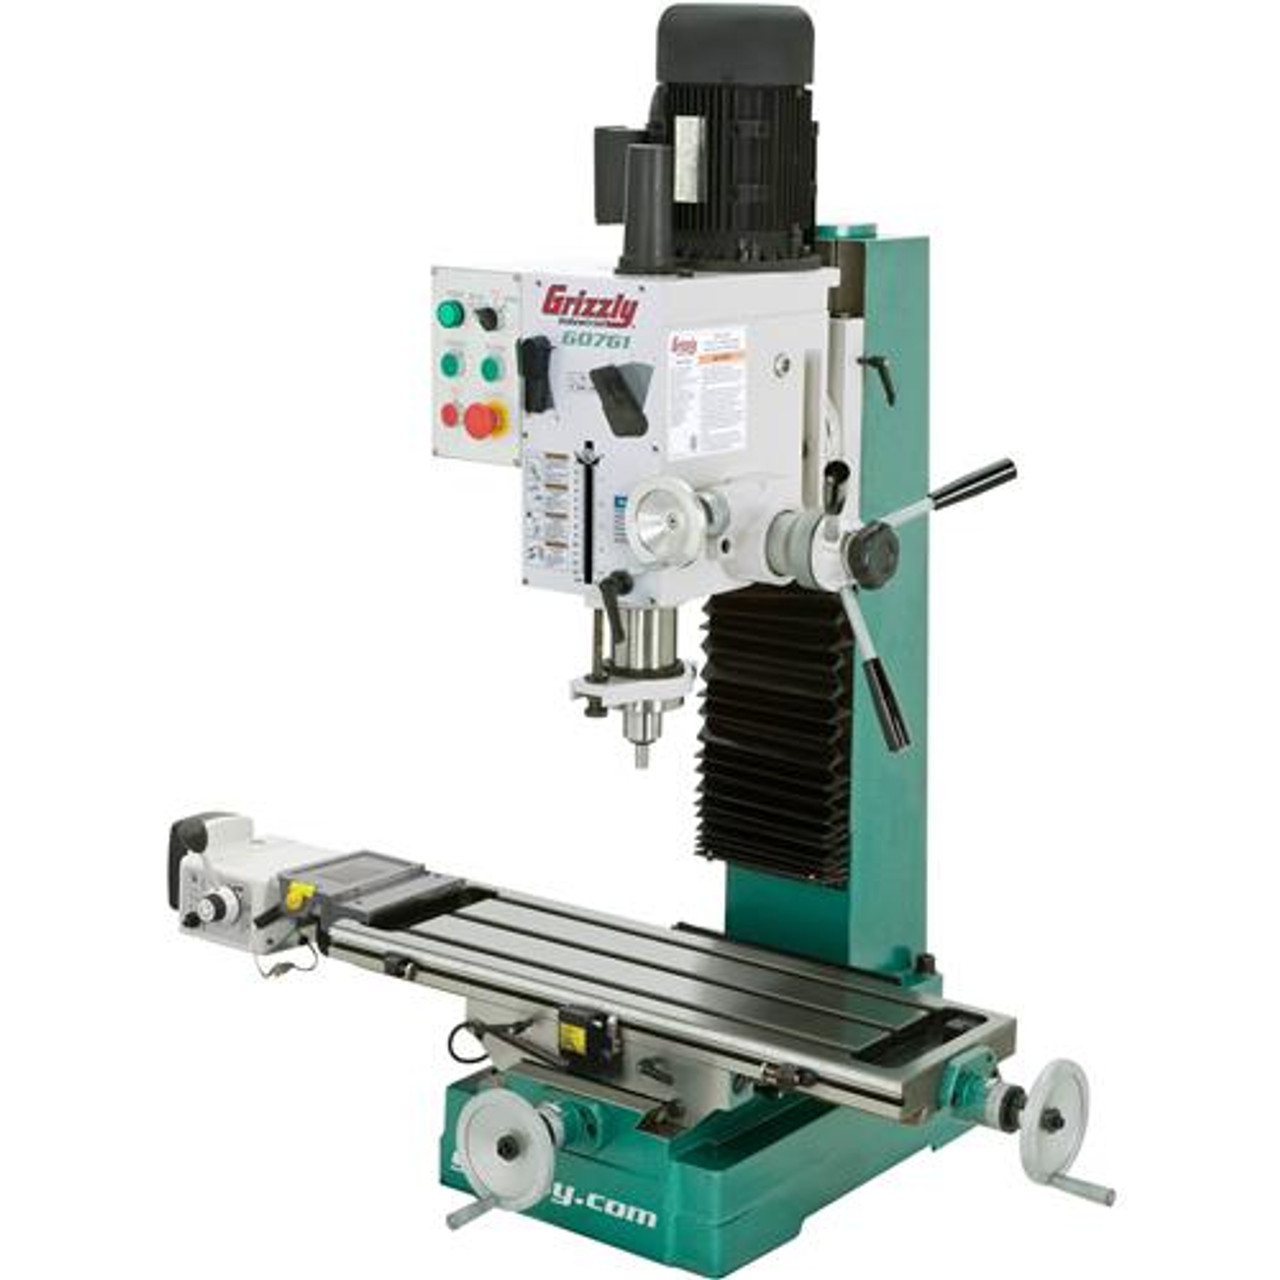 Grizzly G0760 Mill/Drill with Stand 8 x 29 Table with Powerfeed ...